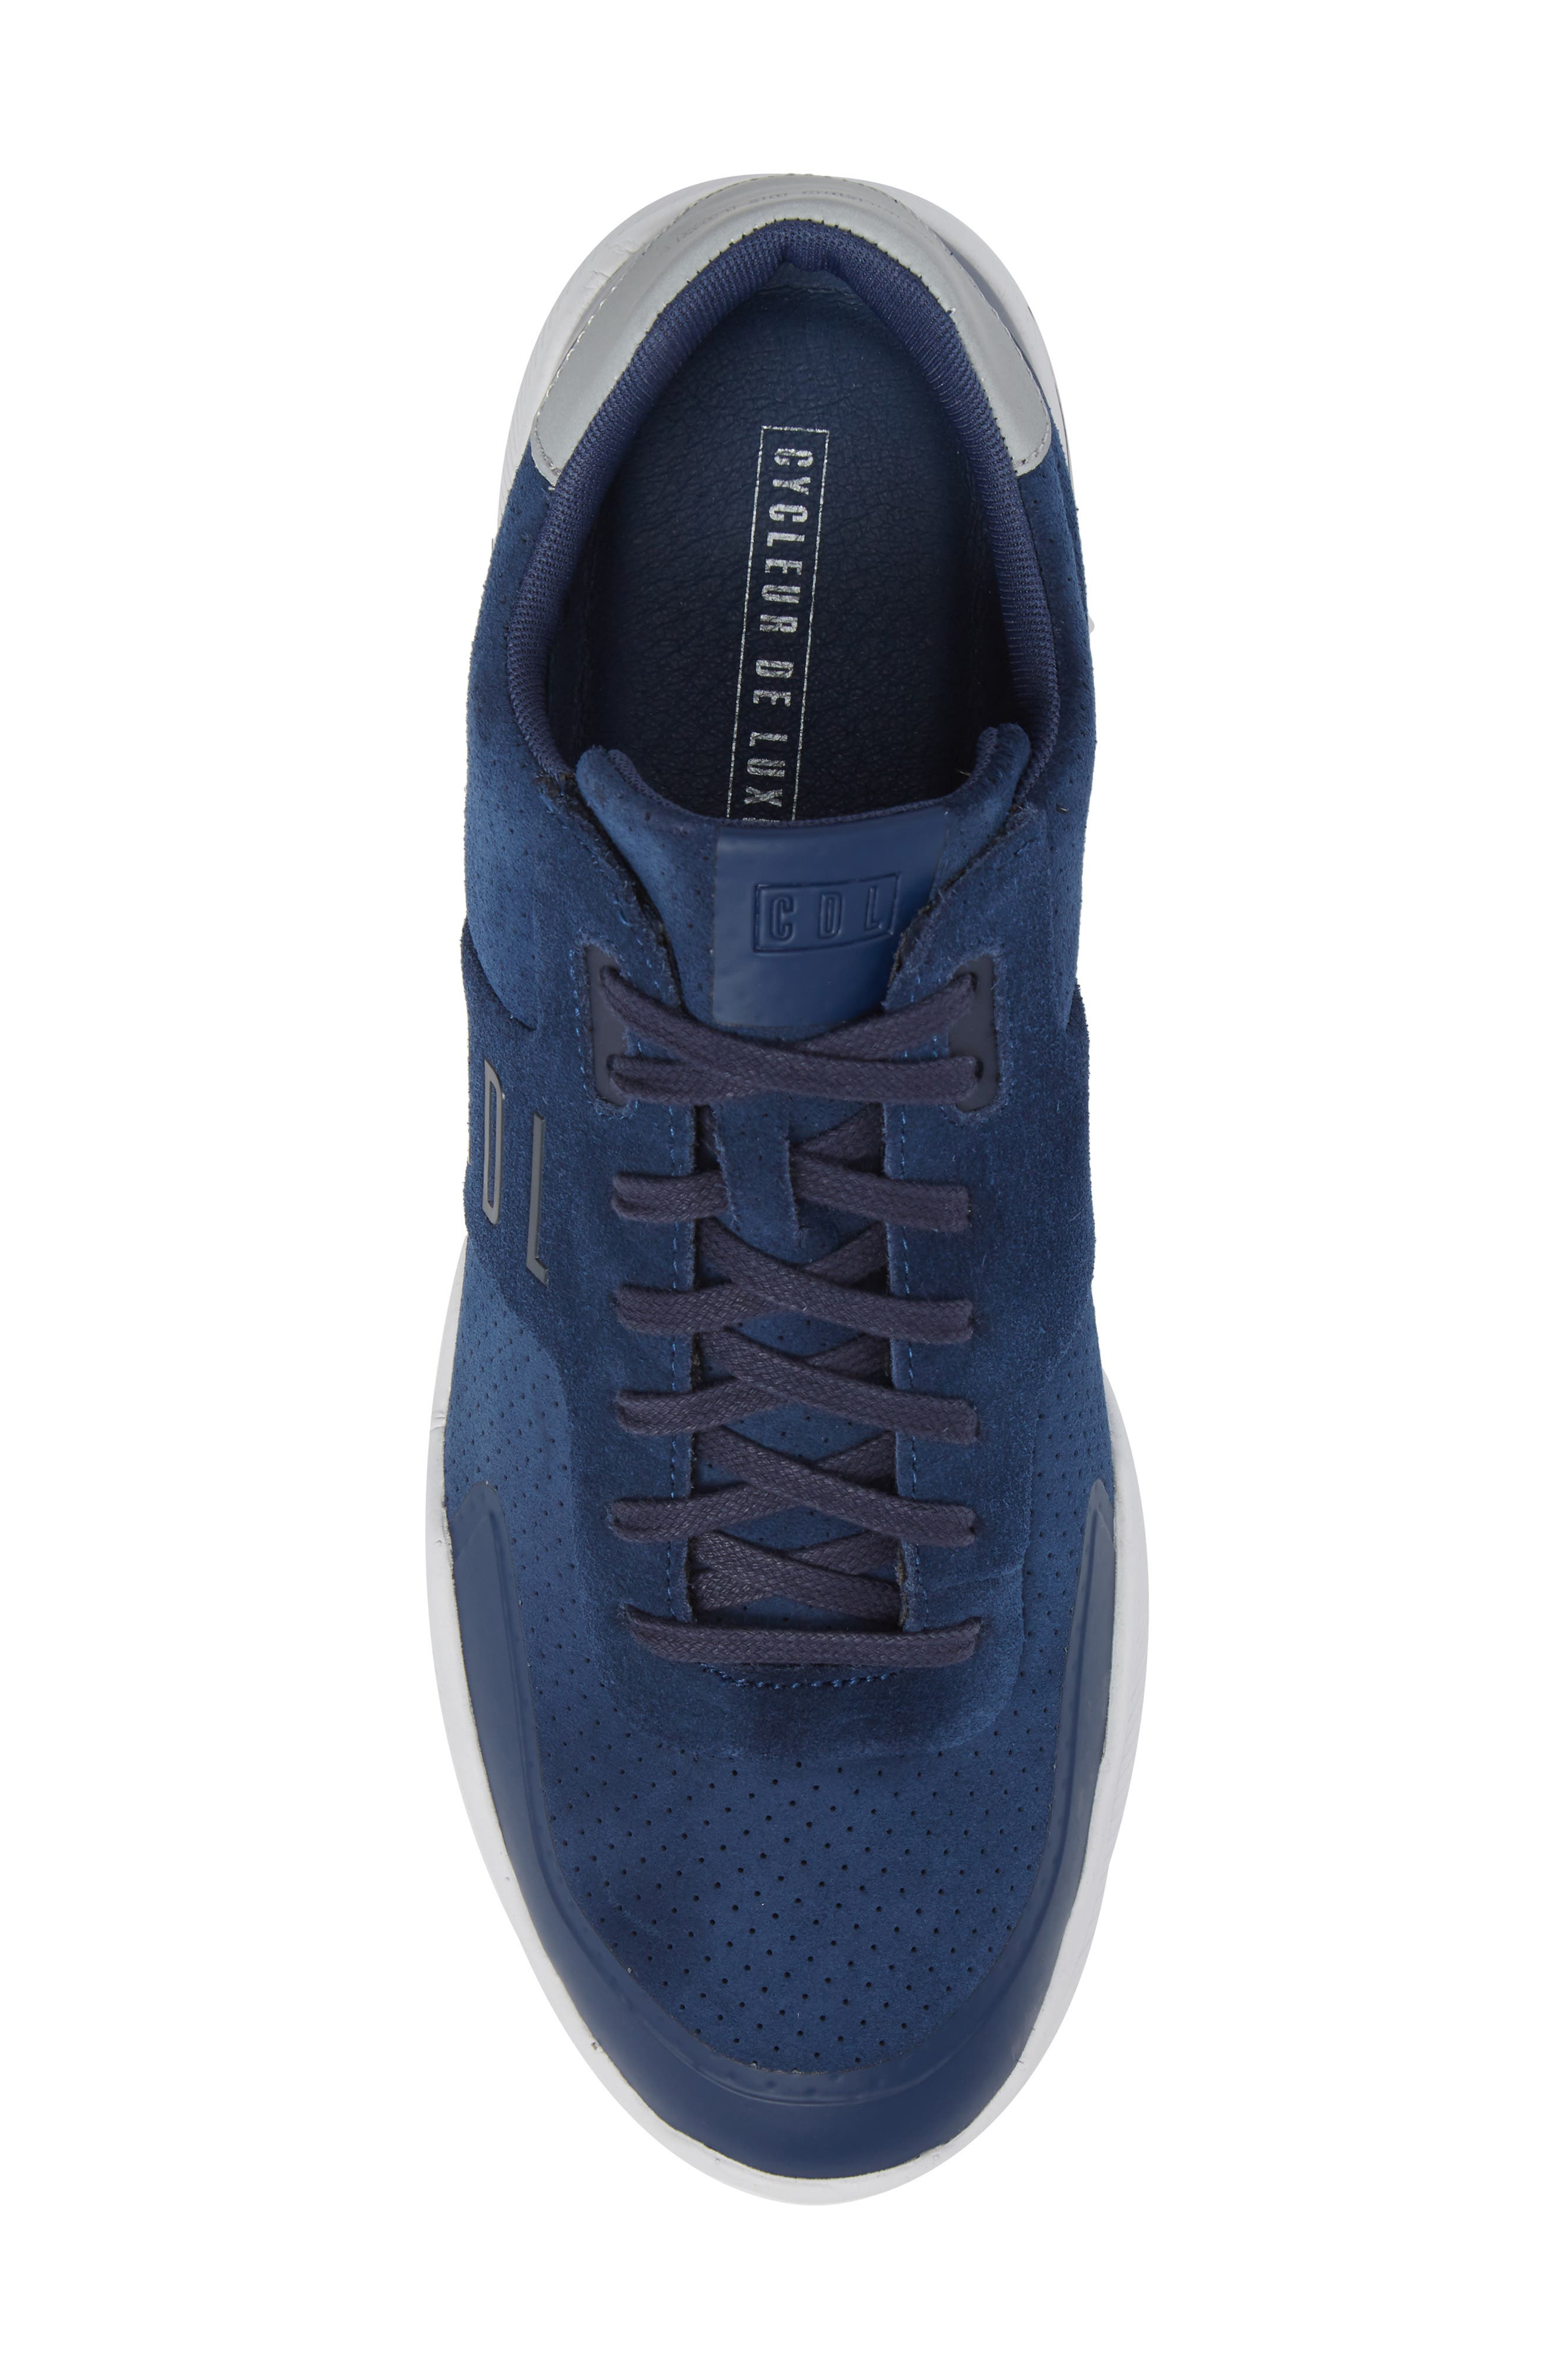 Shima Low Top Sneaker,                             Alternate thumbnail 5, color,                             NAVY SUEDE